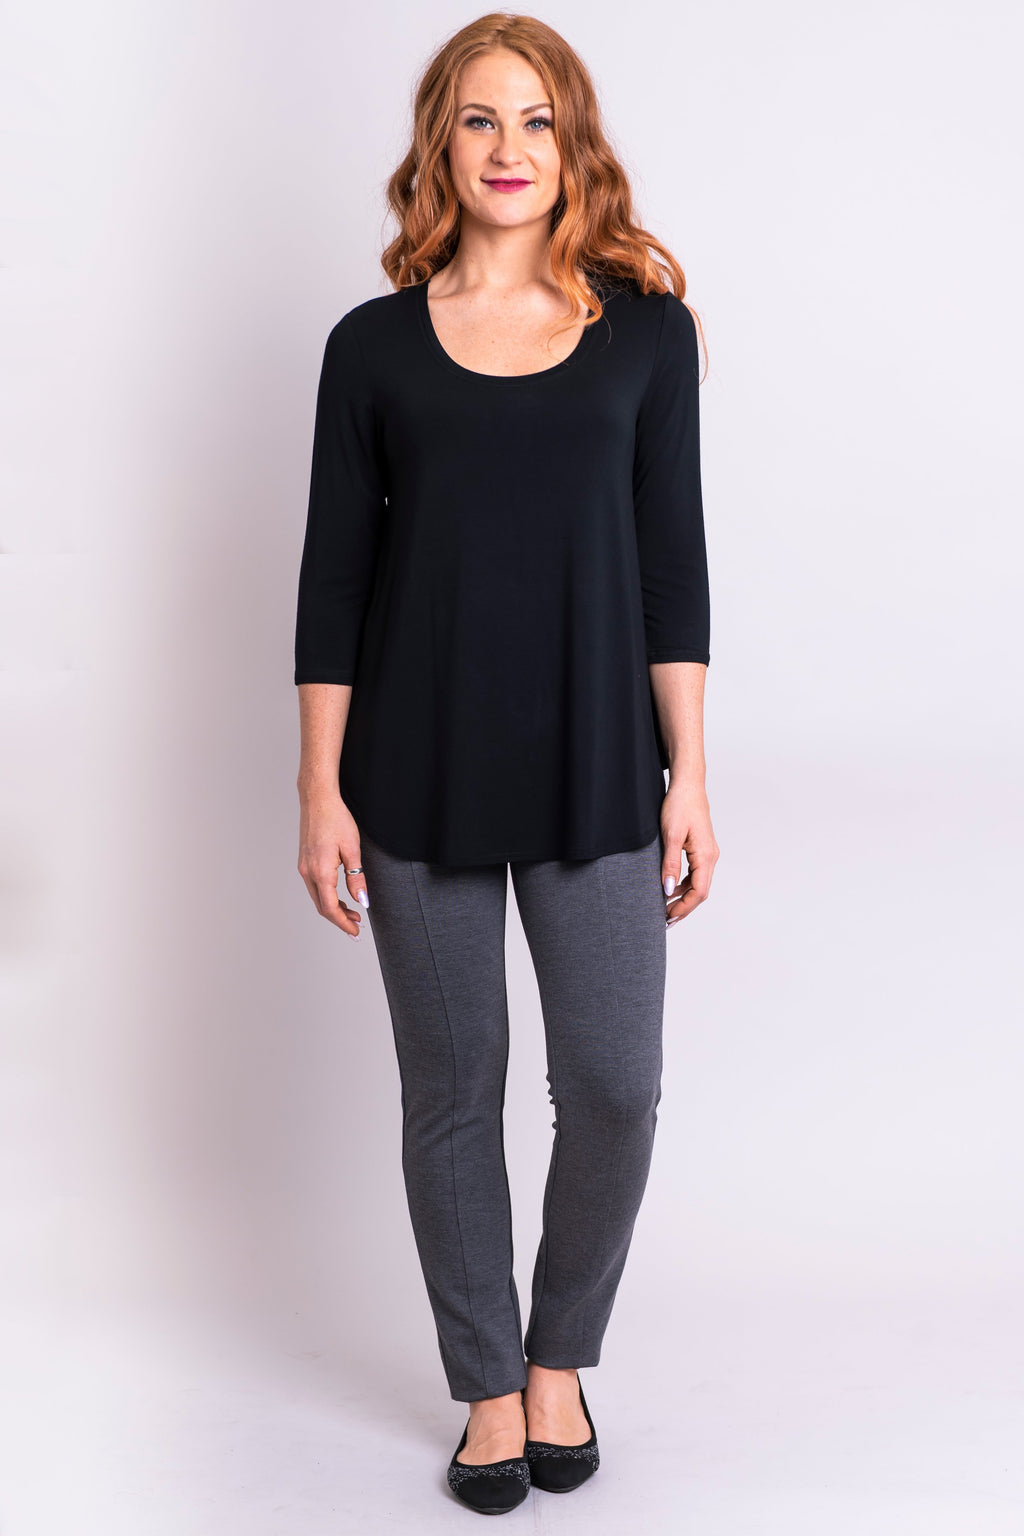 Jazz 3/4 Top, Black - Blue Sky Clothing Co